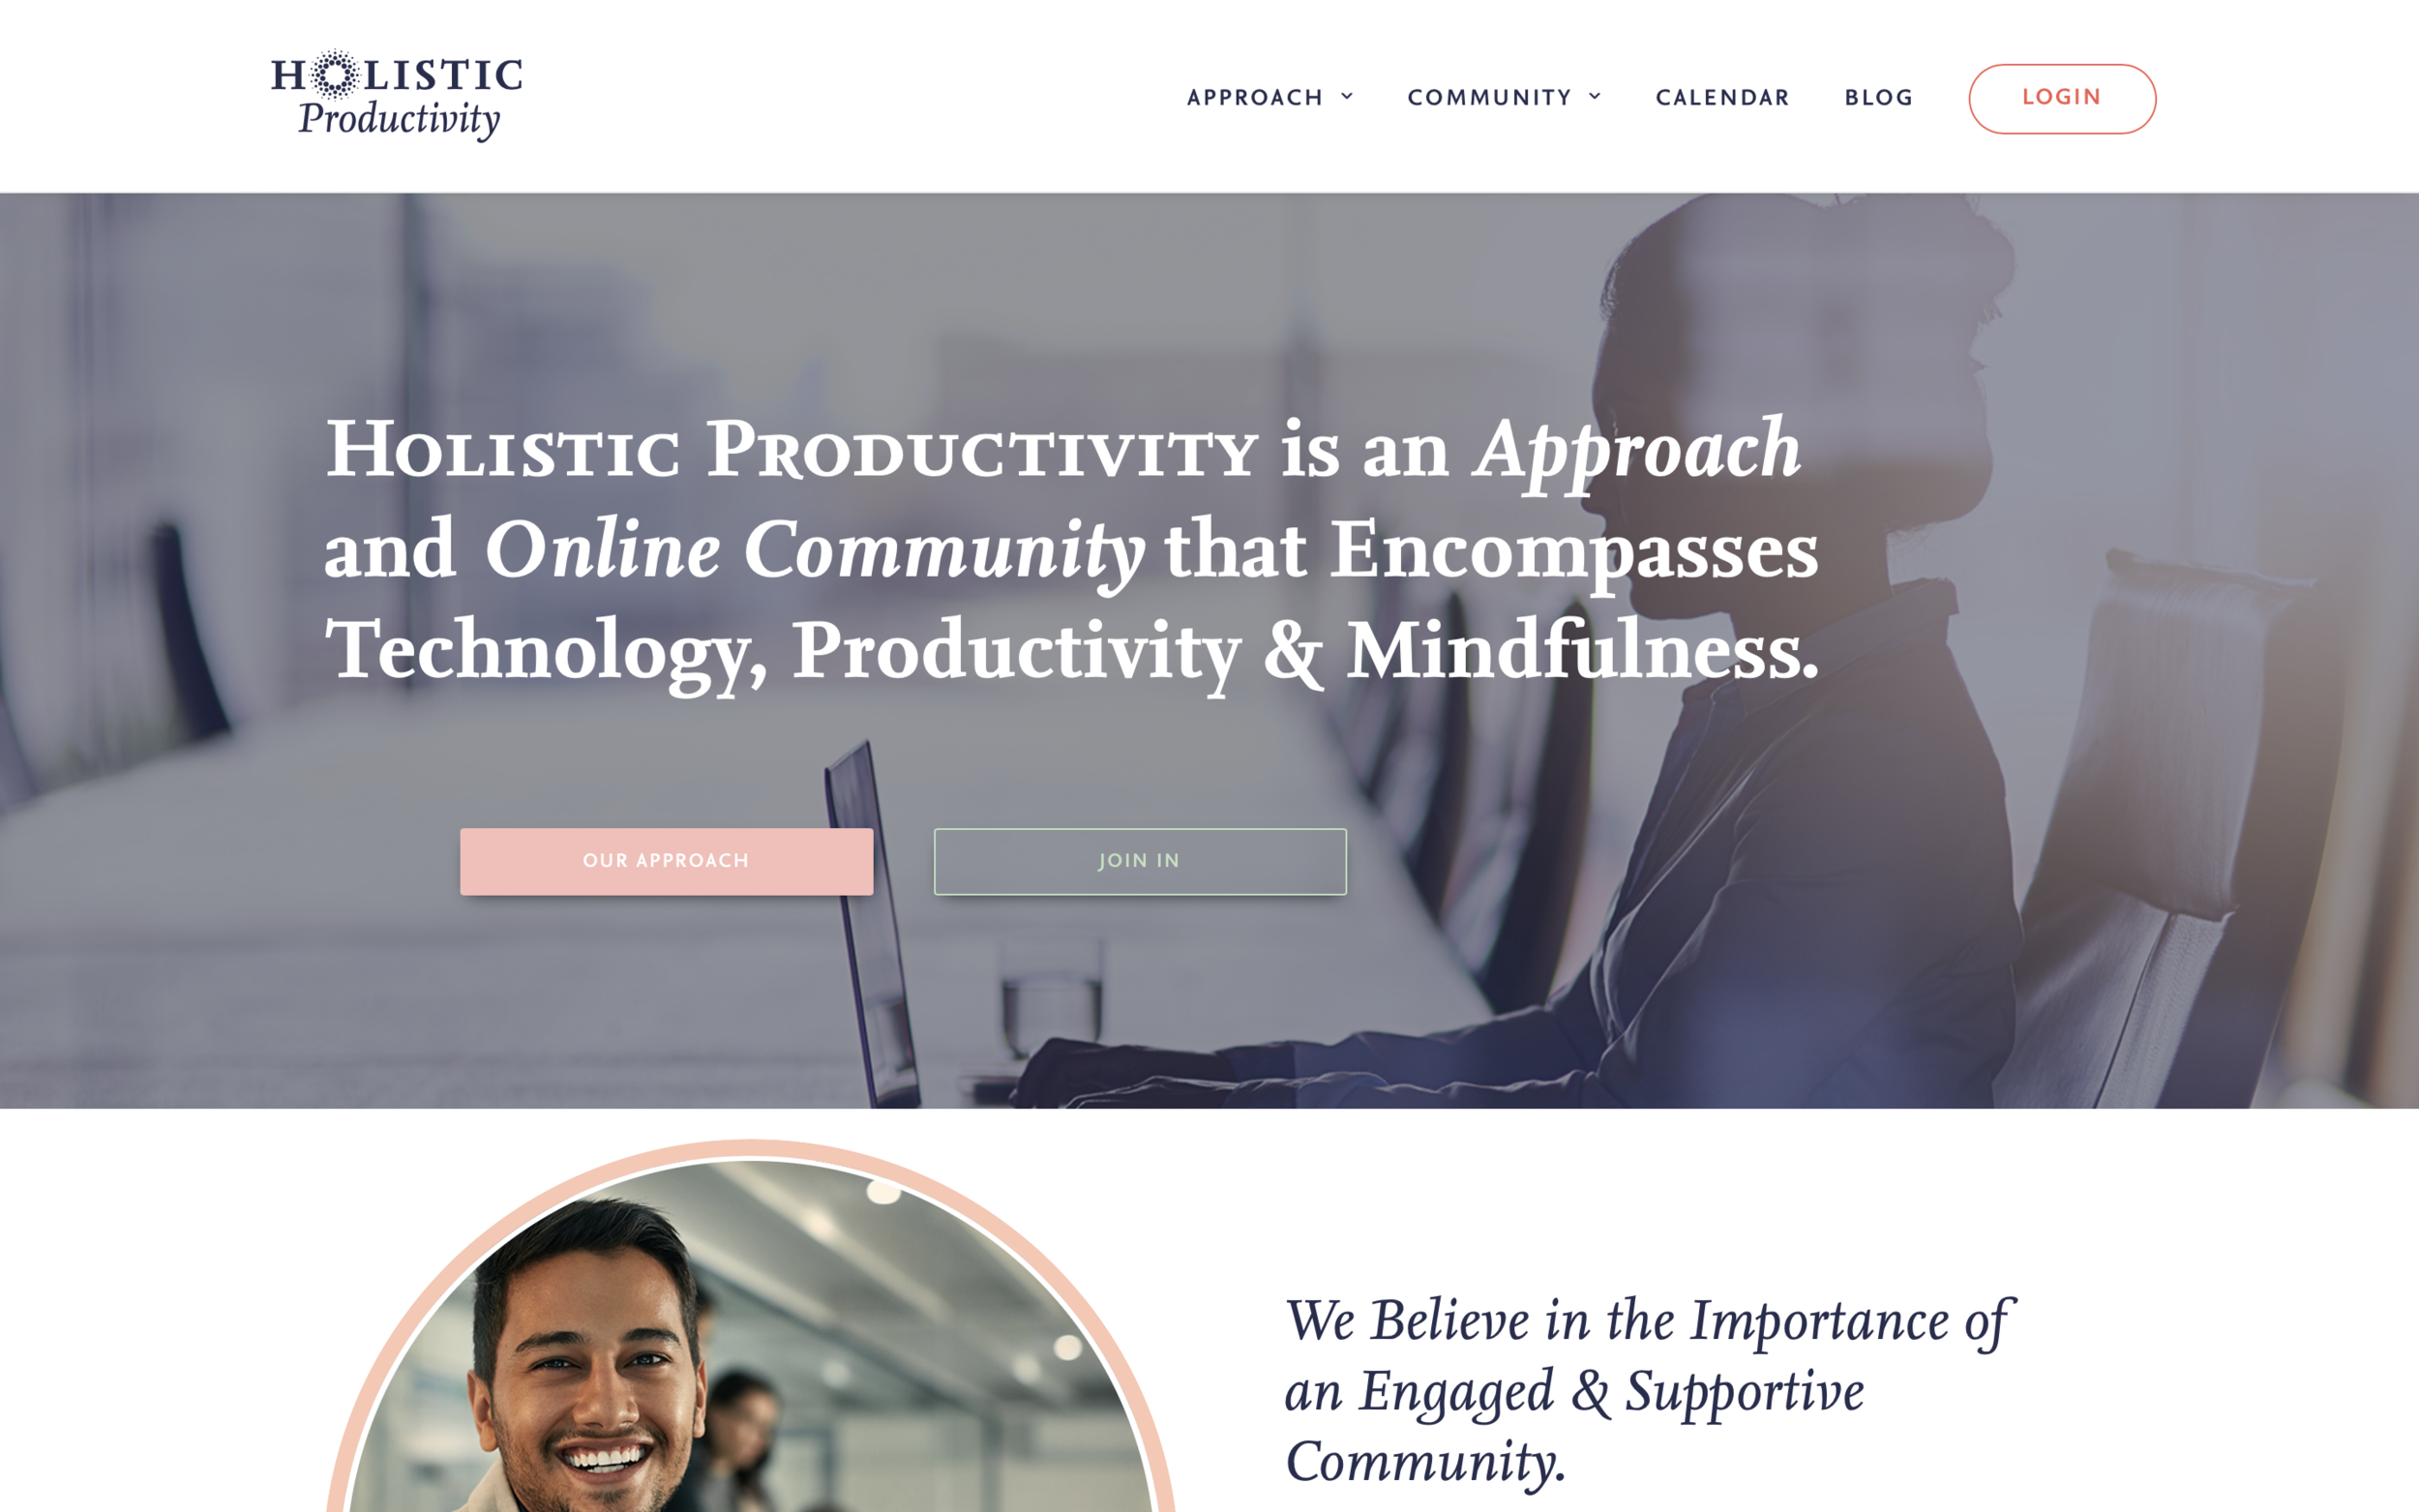 Holistic Productivity Website - Home Page